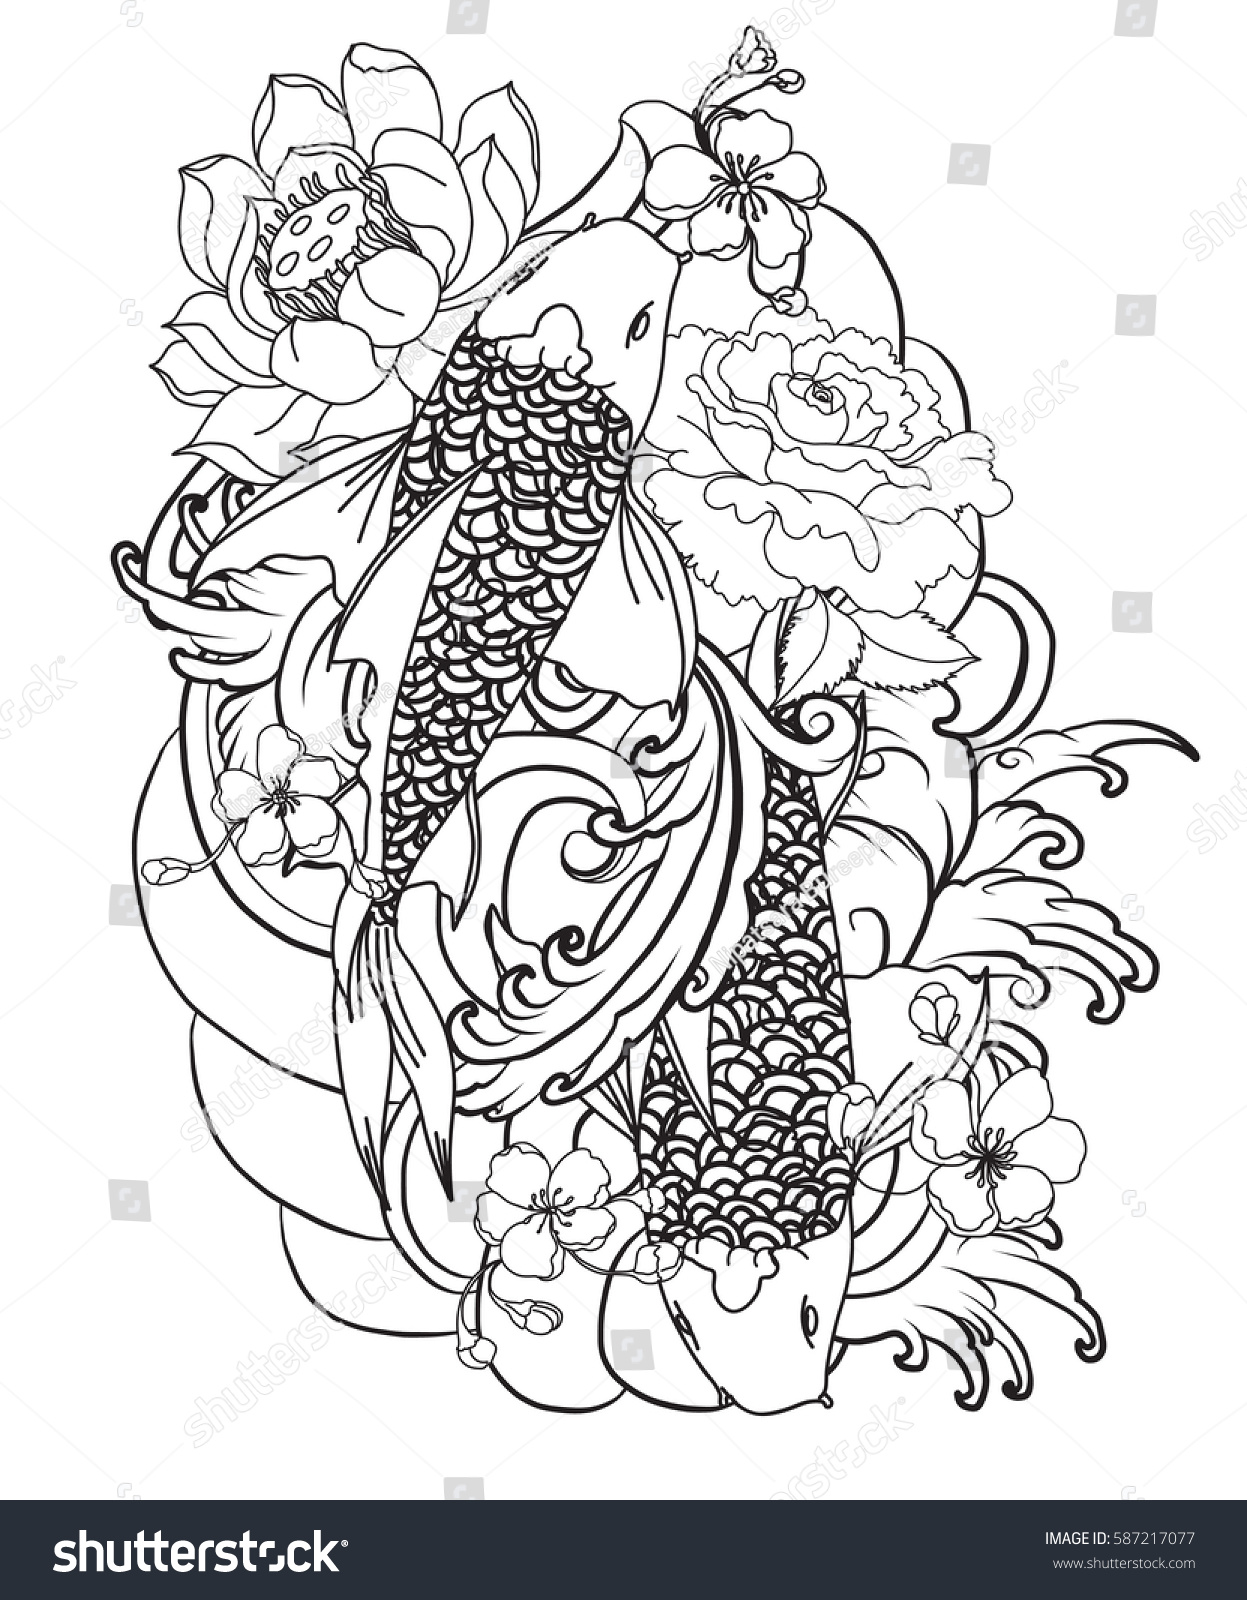 Tattoo Line Drawing Books : Hand drawn outline koi fish tattoo stock vector